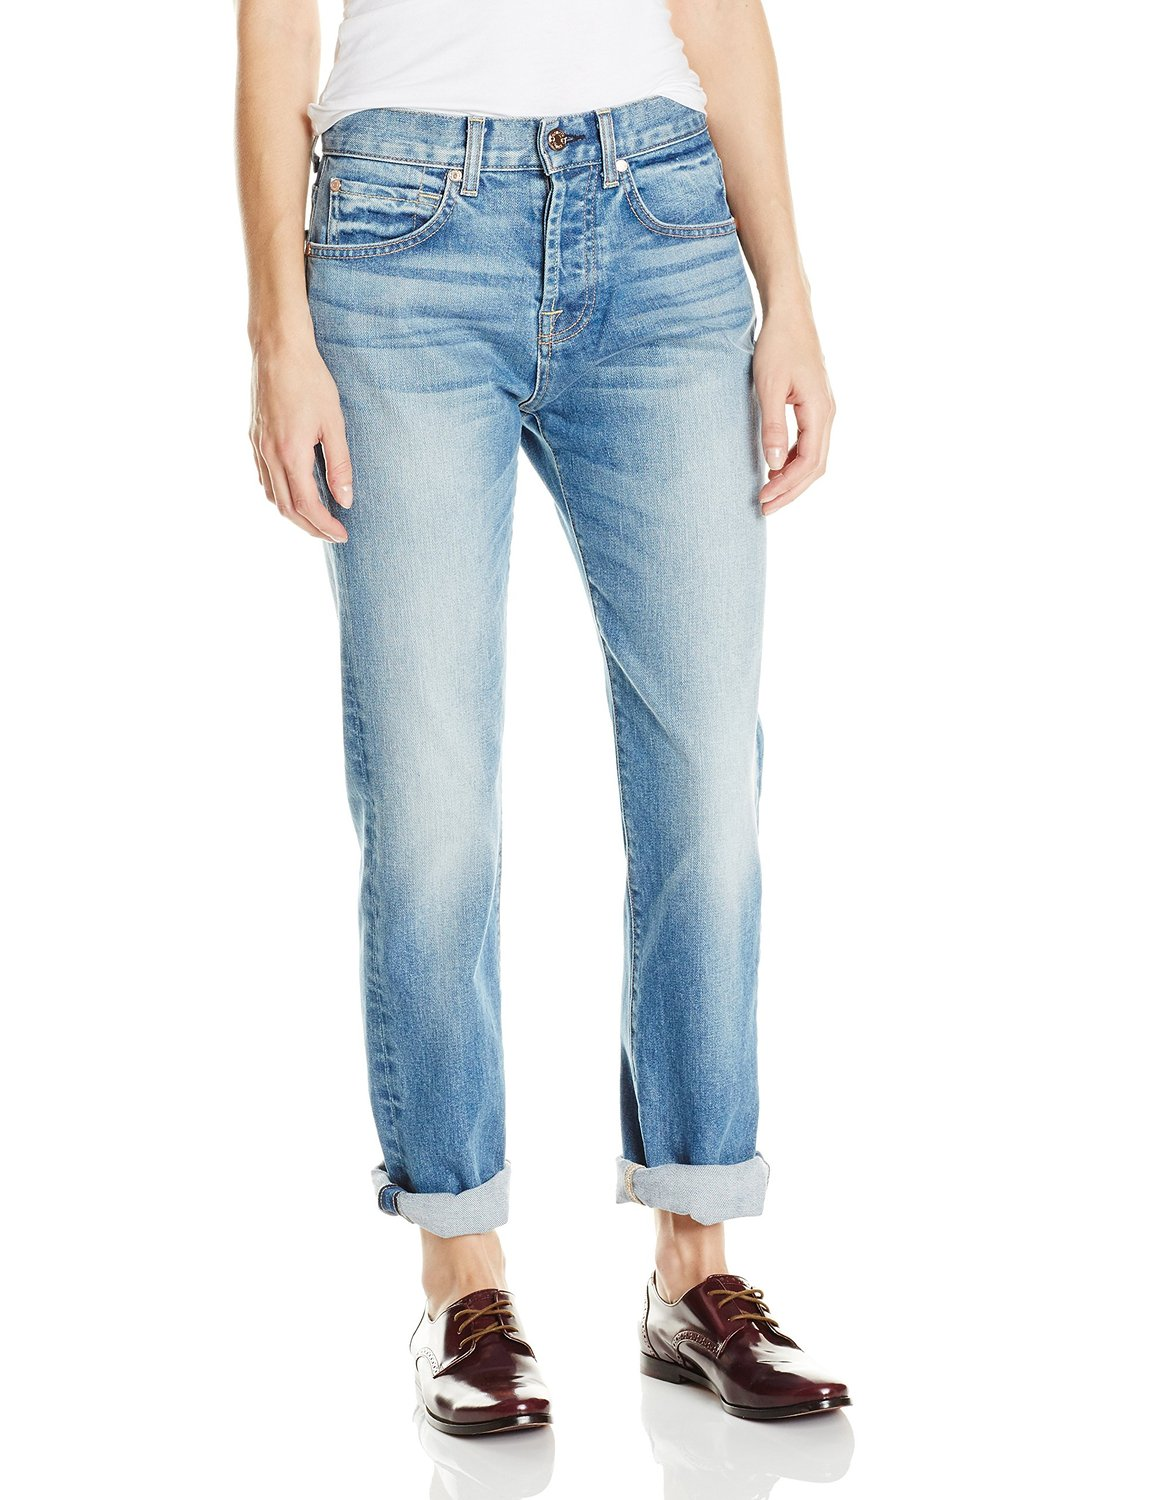 7 for all mankind women's 1984 boyfriend jean in super heritage light blue at amazon women's clothing store: